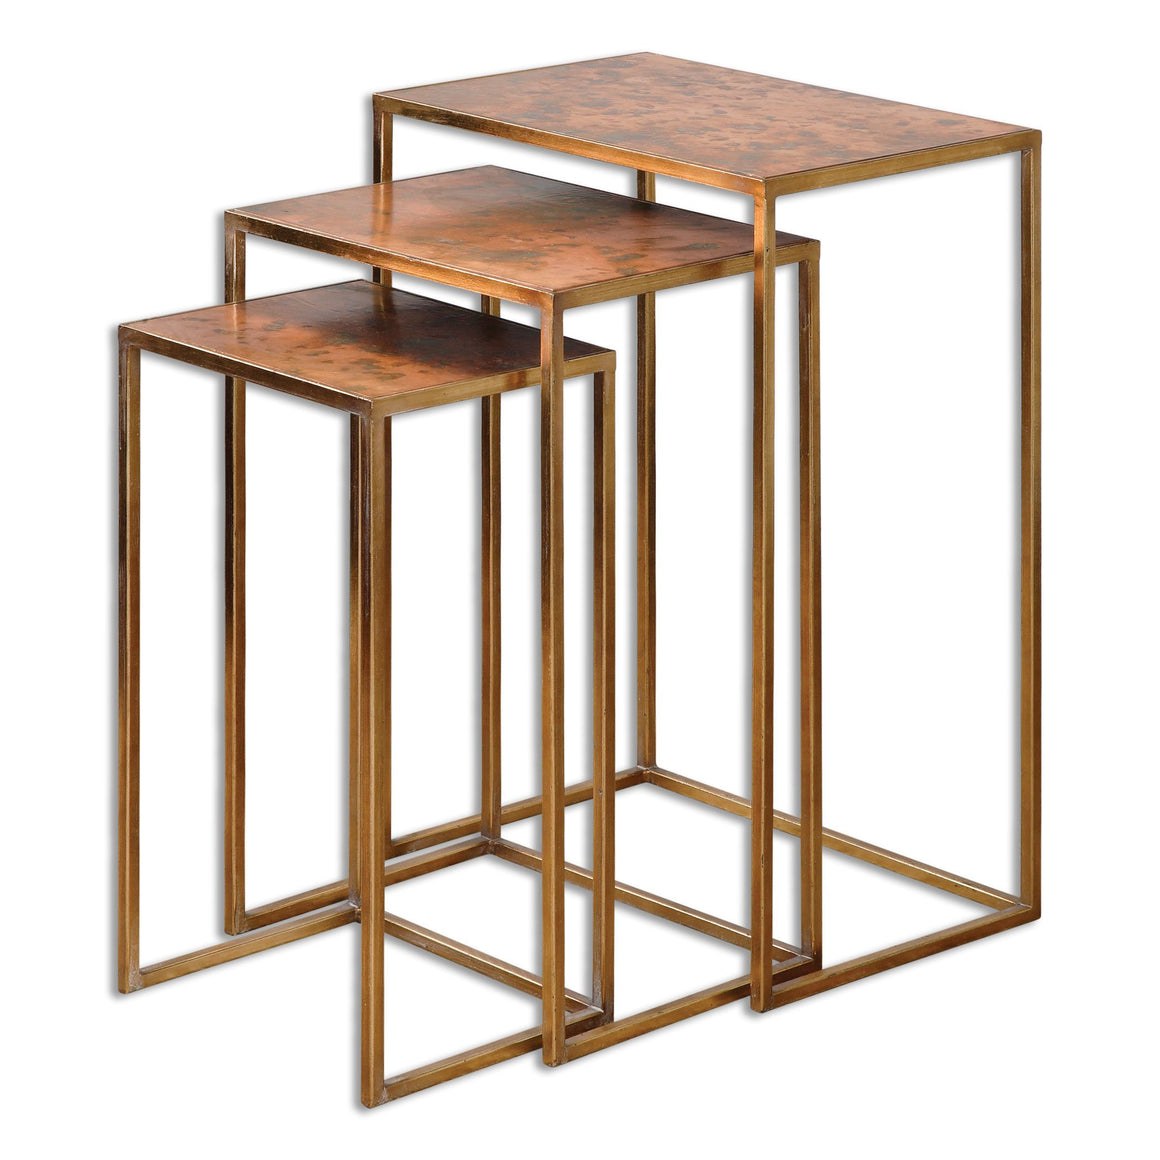 Copres Oxidized Nesting Tables Set/3 - taylor ray decor